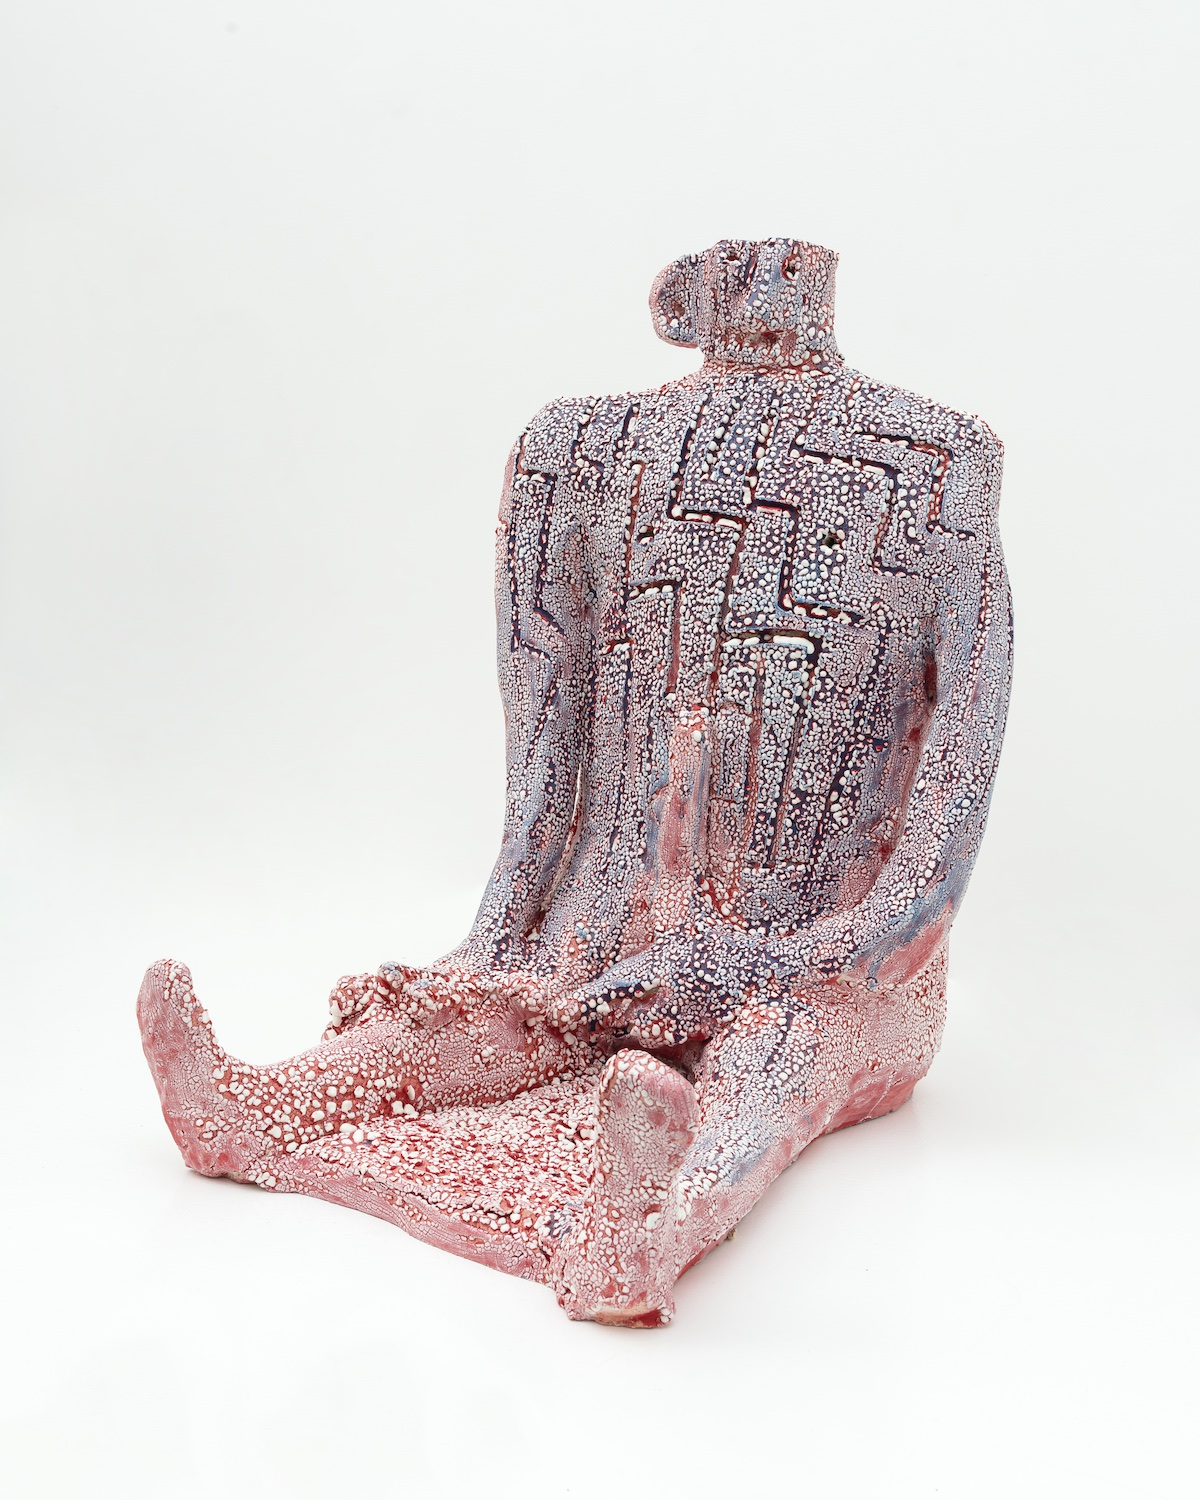 "William J. O'Brien  Untitled  2015 Glazed ceramic 23h x 16w x 22""d in WOB998"